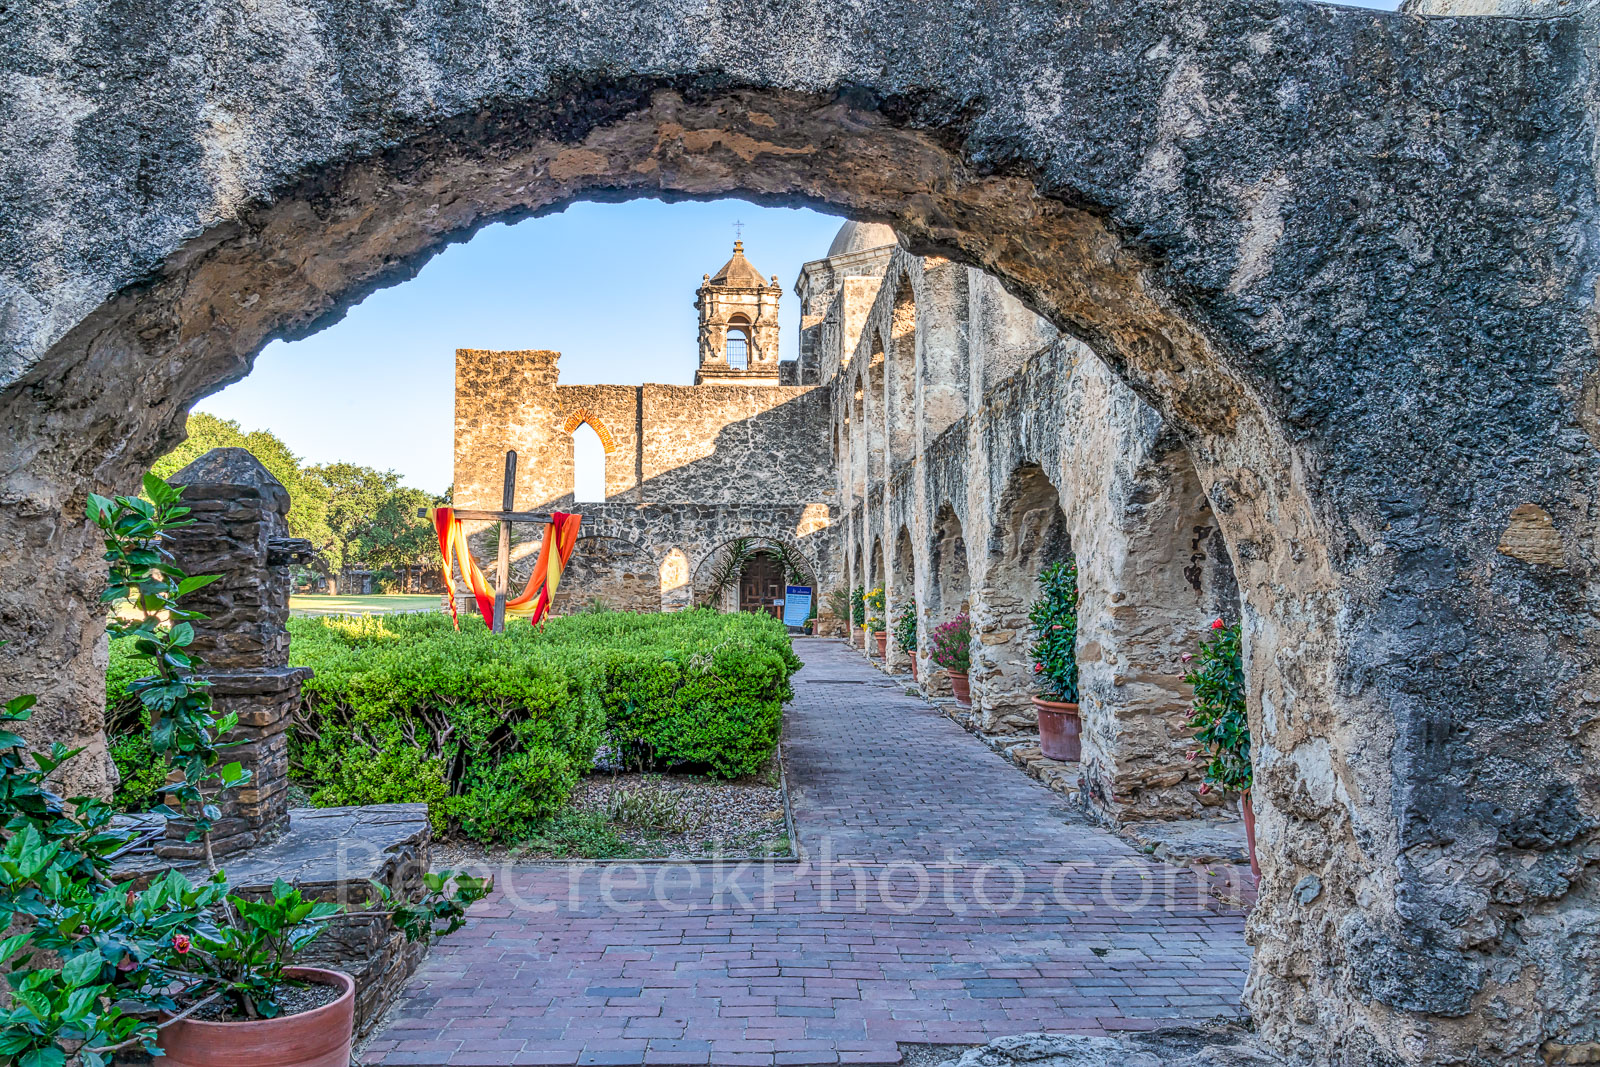 San Antonio, historic, landmarks, mission, missions, Flying Buttresses, Mission San Jose, San Antonio Texas, downtown, tourism, tourist, travel, images of missions, photos of missions, pictures of mis, photo